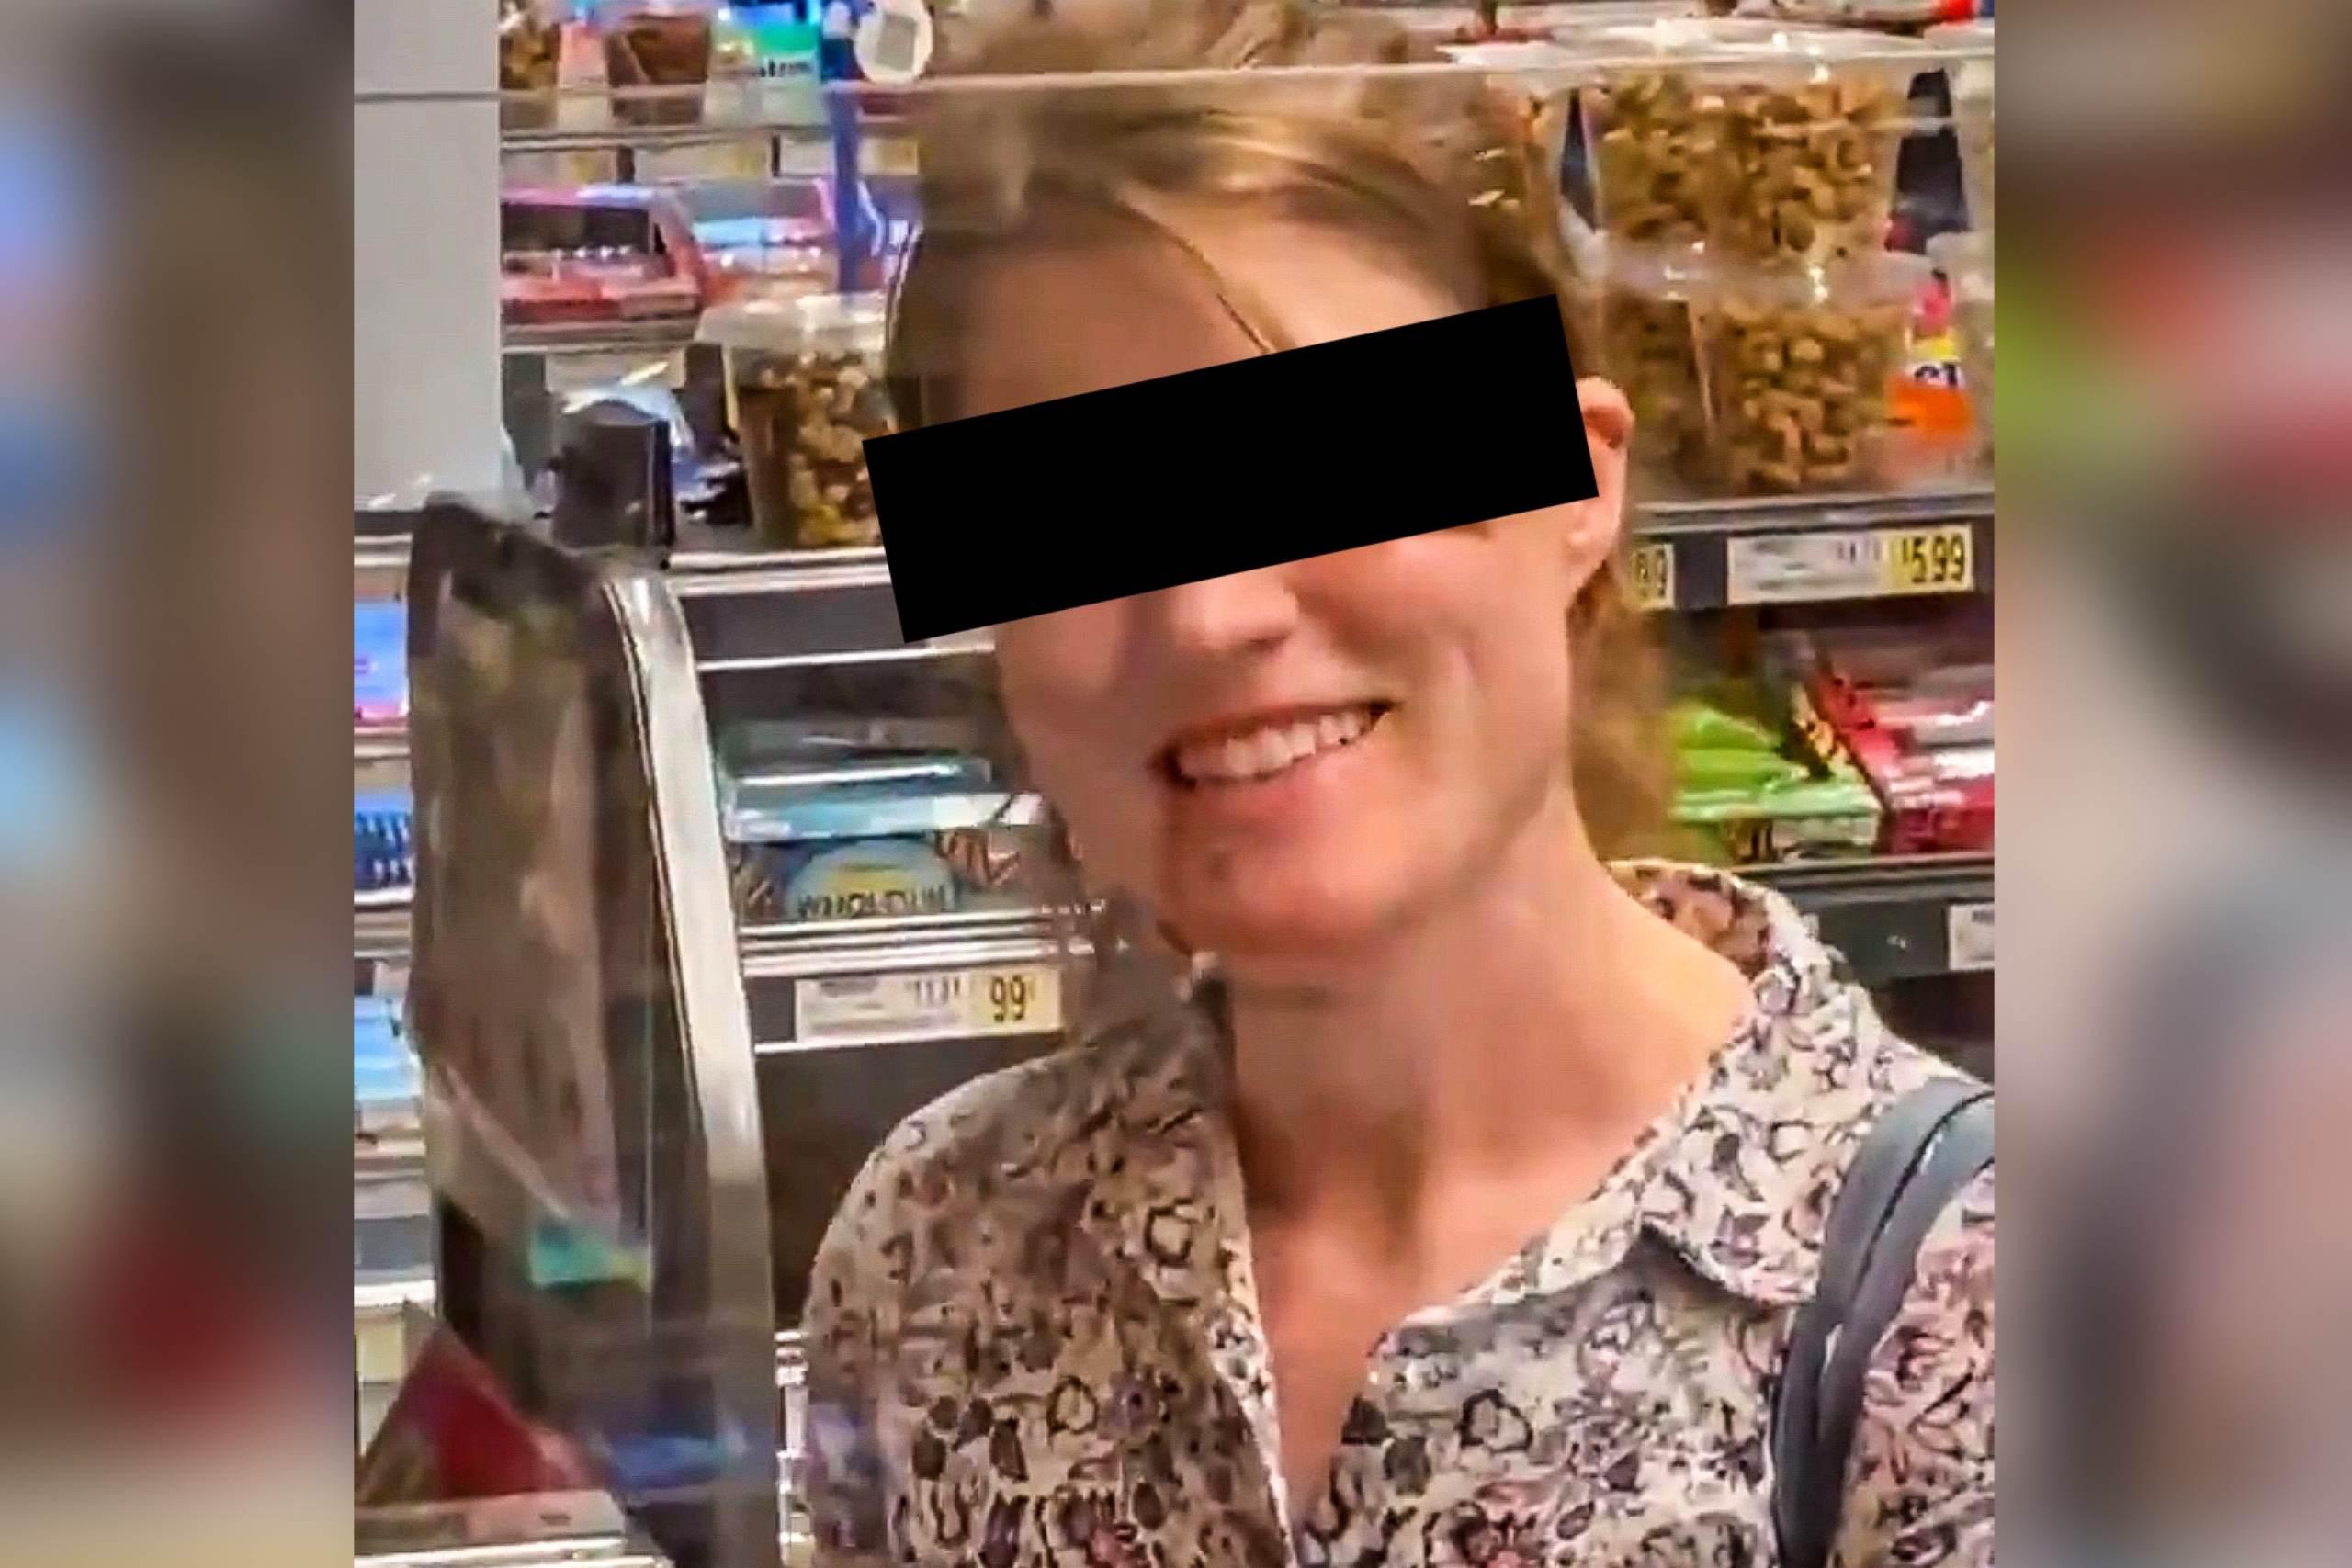 Why This Unhinged Liberal Just Tried Fighting A PREGNANT Woman Is Absolutely Insane!